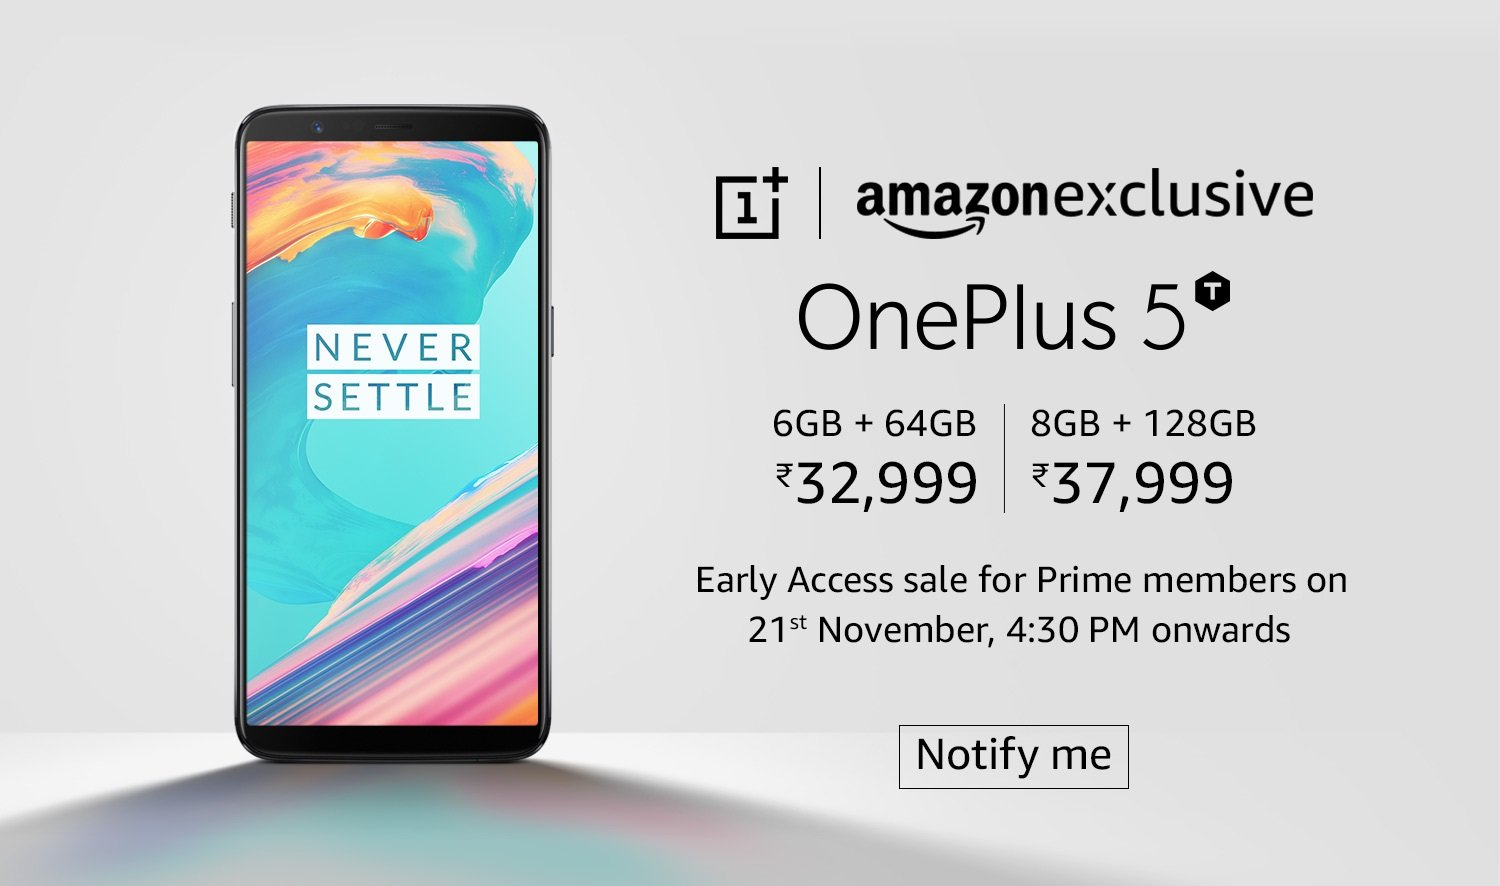 OnePlus 5T : Announcement, Details, Specification and Price in India